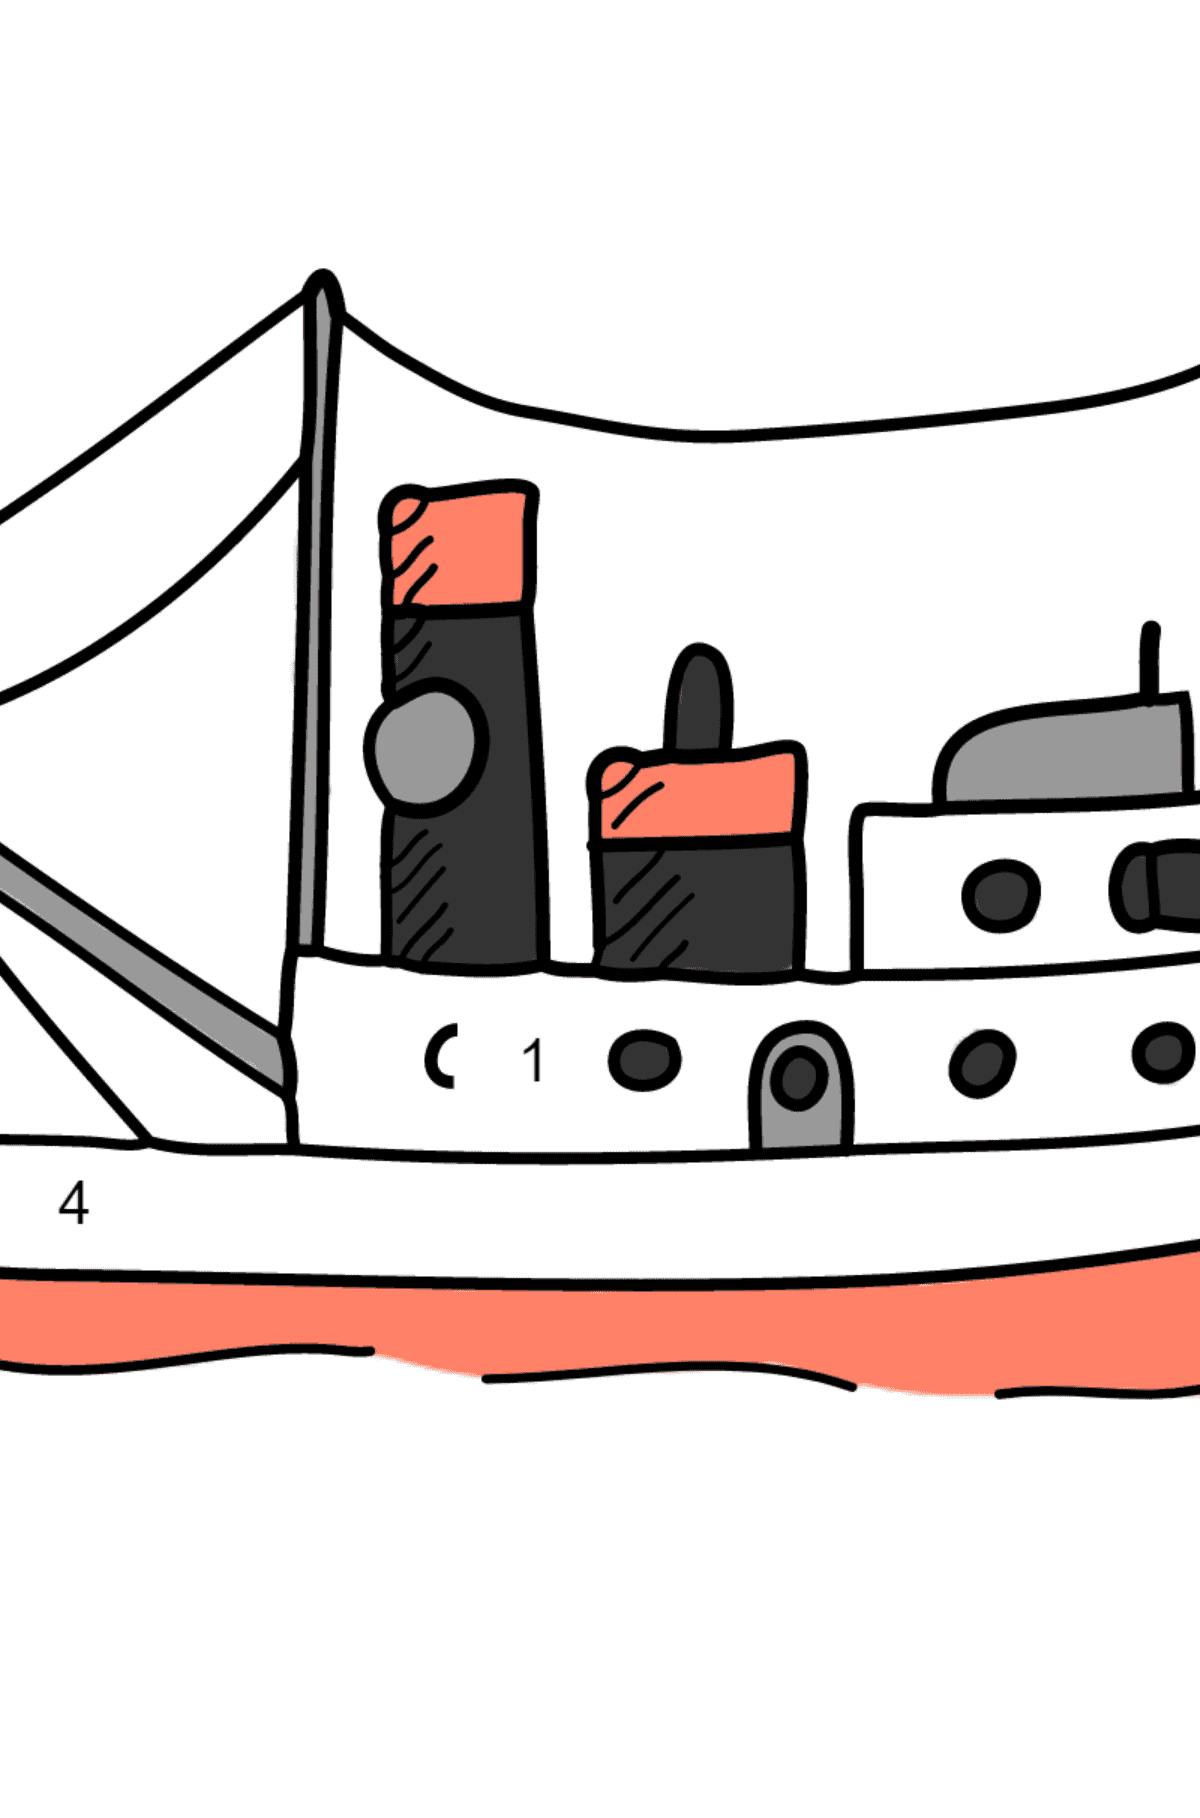 Coloring Page - A Cargo Ship - Coloring by Numbers for Kids